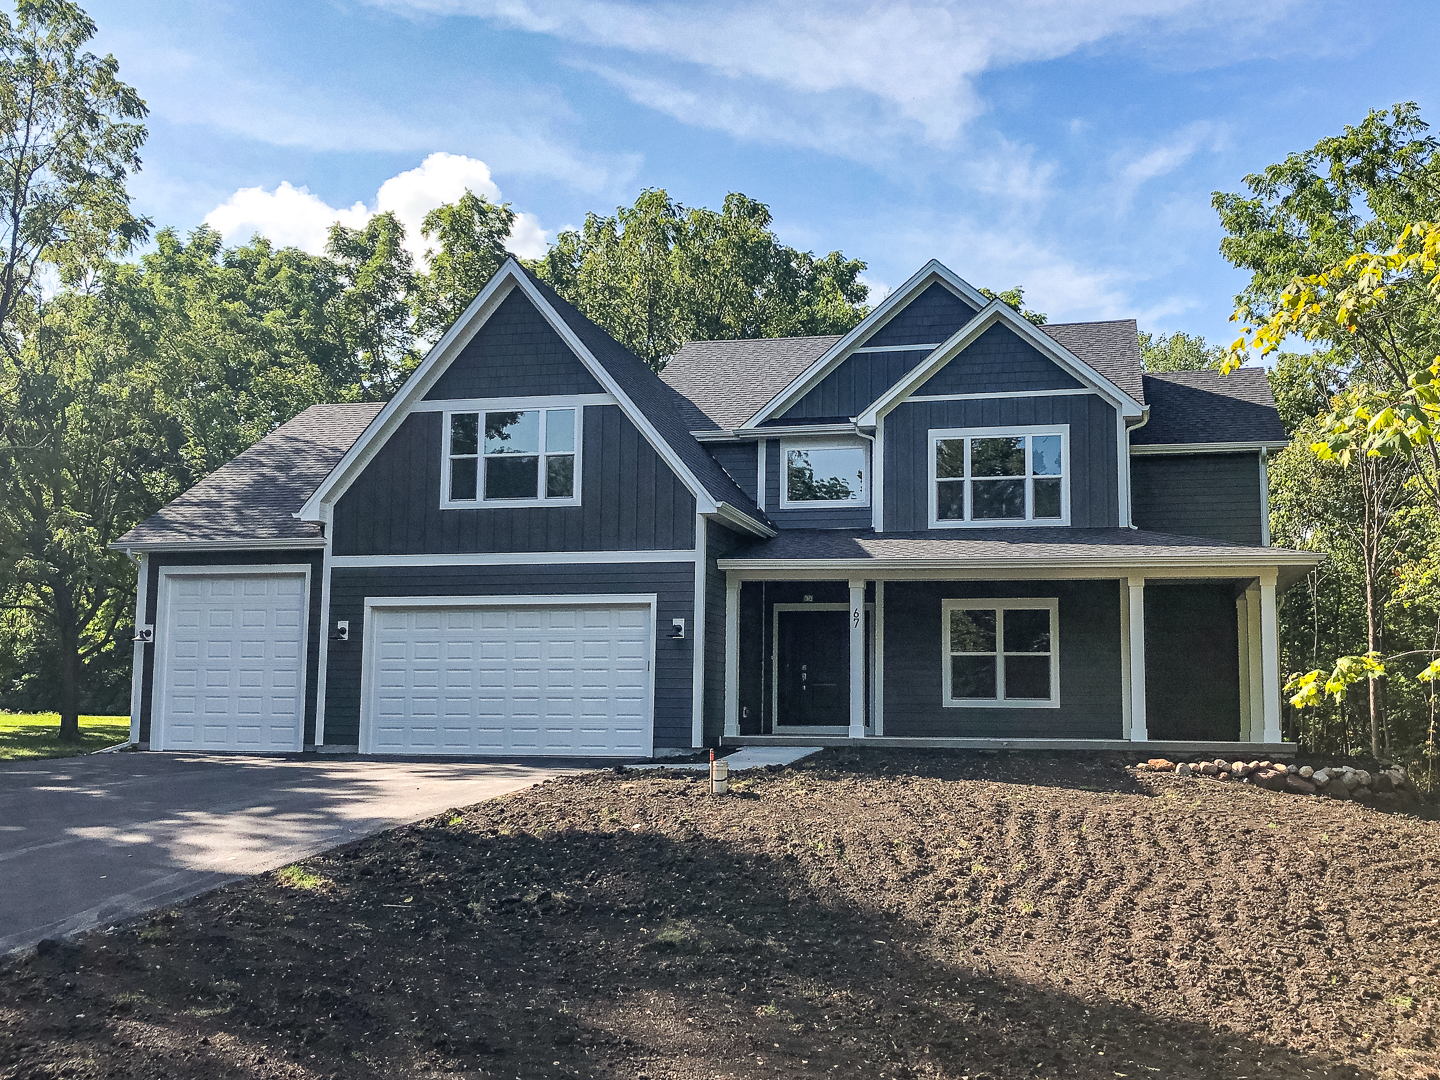 Photo of 26005 W Forrester Drive, Plainfield, IL 60585 (MLS # 10678085)